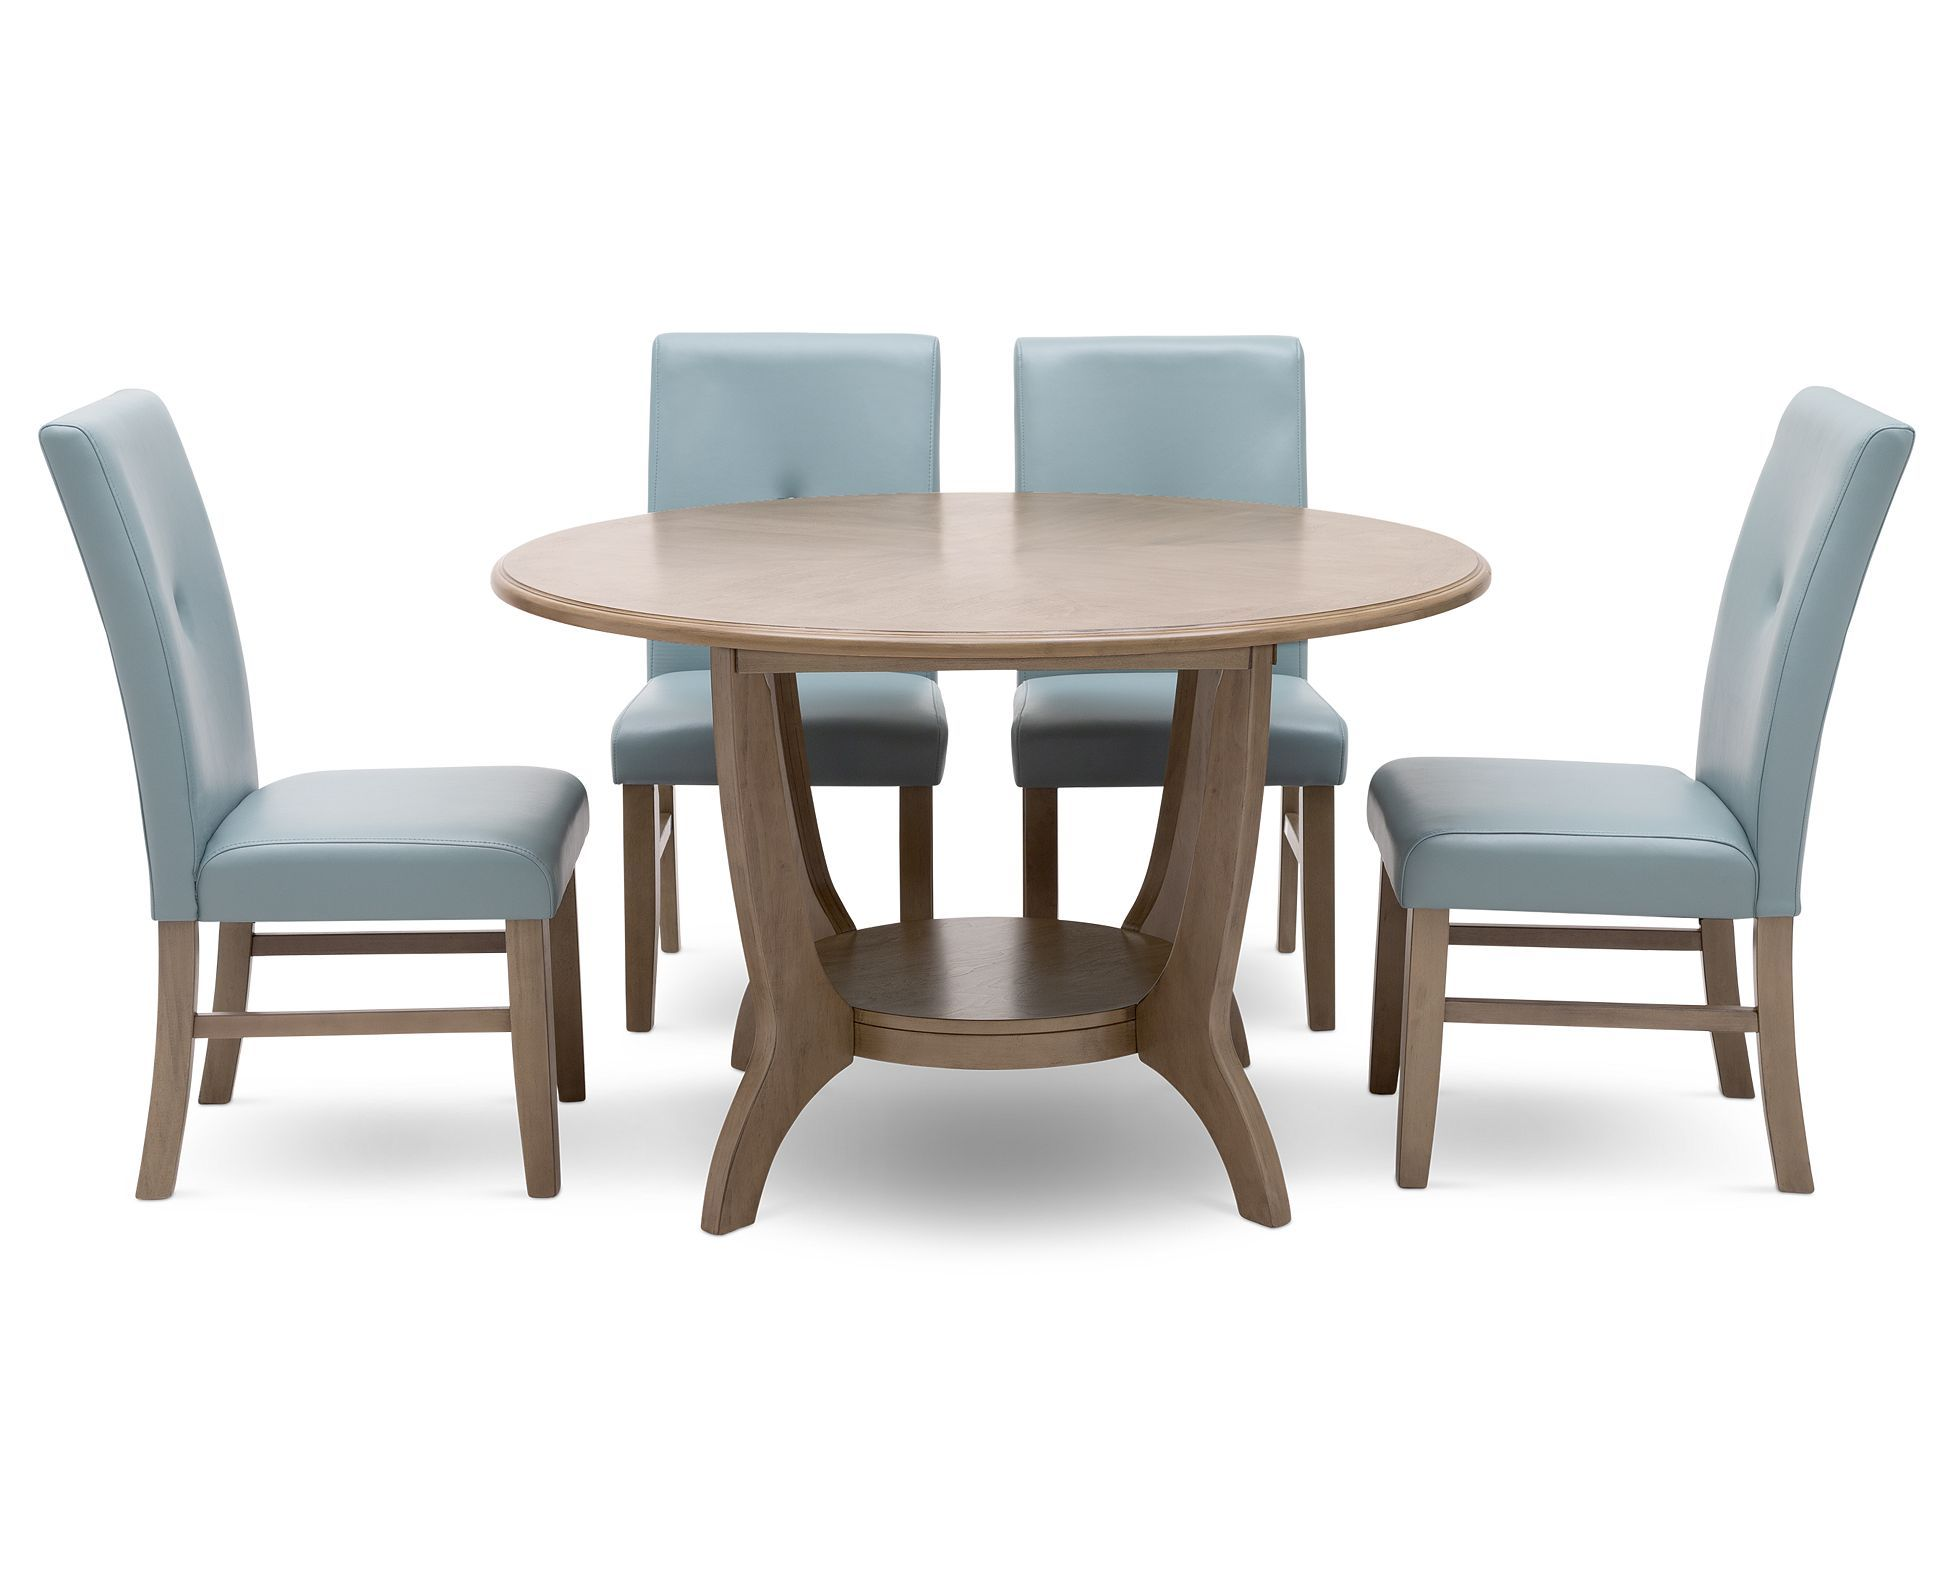 The Overbrook 5 Piece Sky Blue Dining Room Set In Sky Blue Adds